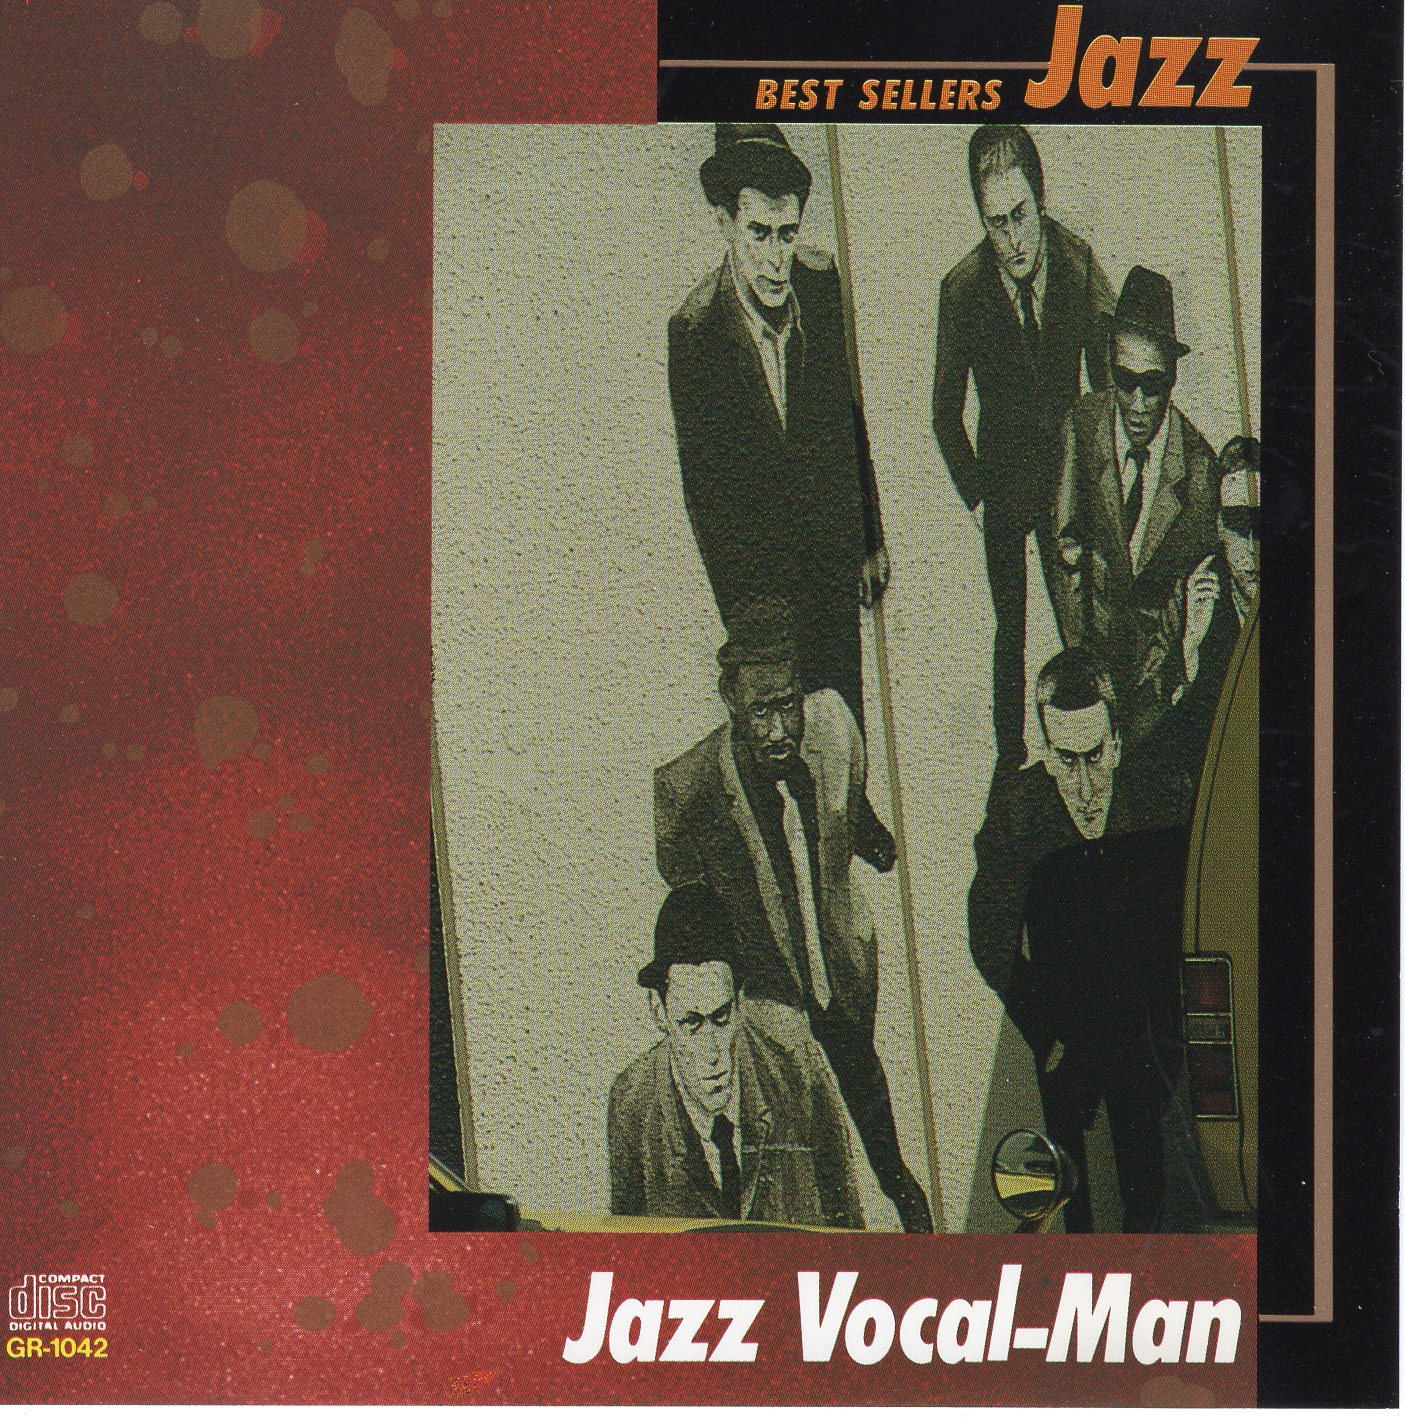 """Best Sellers Jazz: Jazz Vol-Man"""